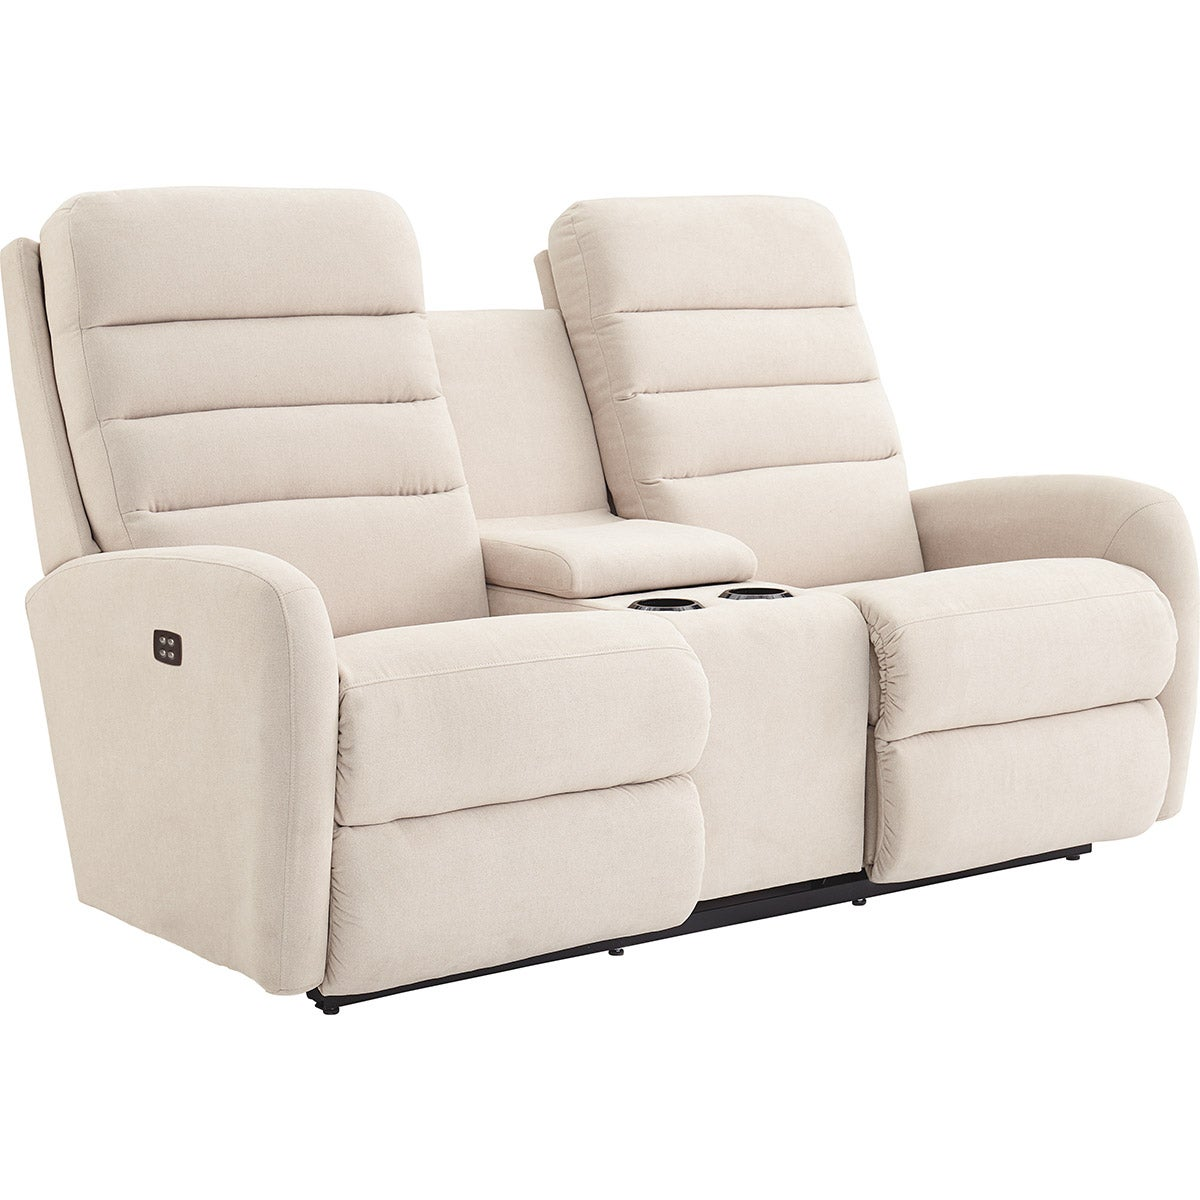 Forum Powerreclinexrw Full Reclining Loveseat W Console